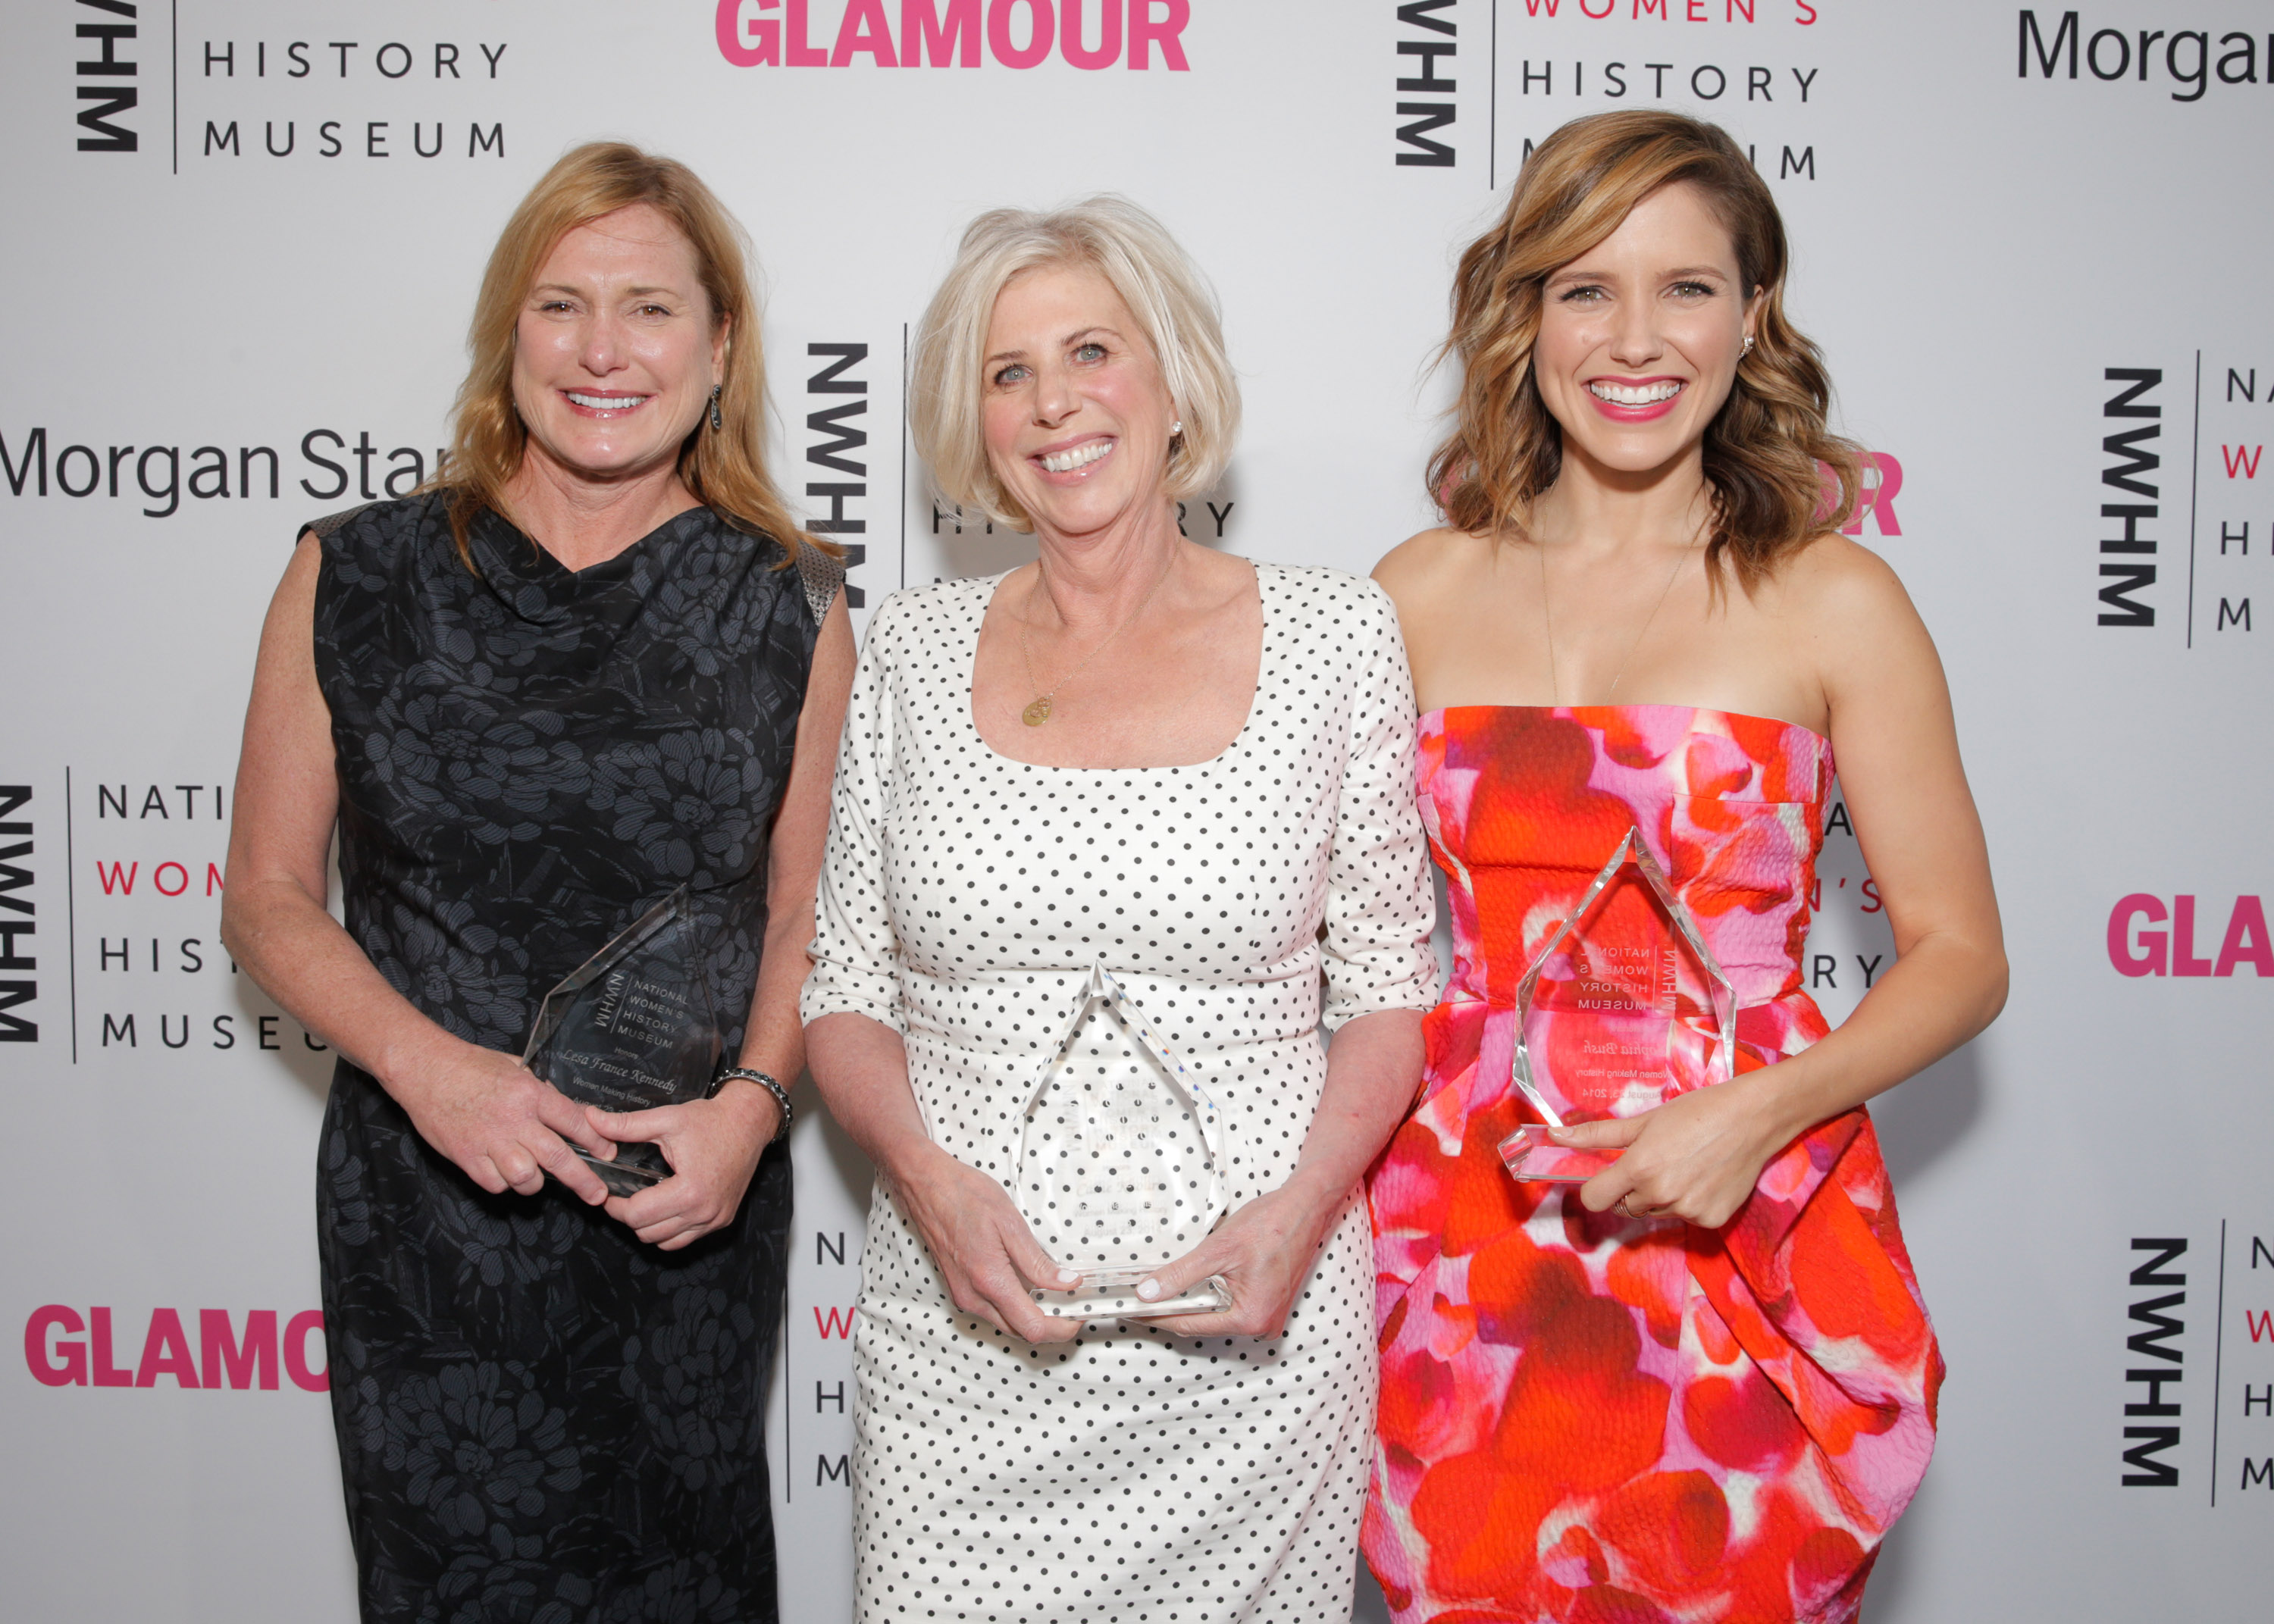 Lesa France Kennedy, Callie Khouri and Sophia Bush